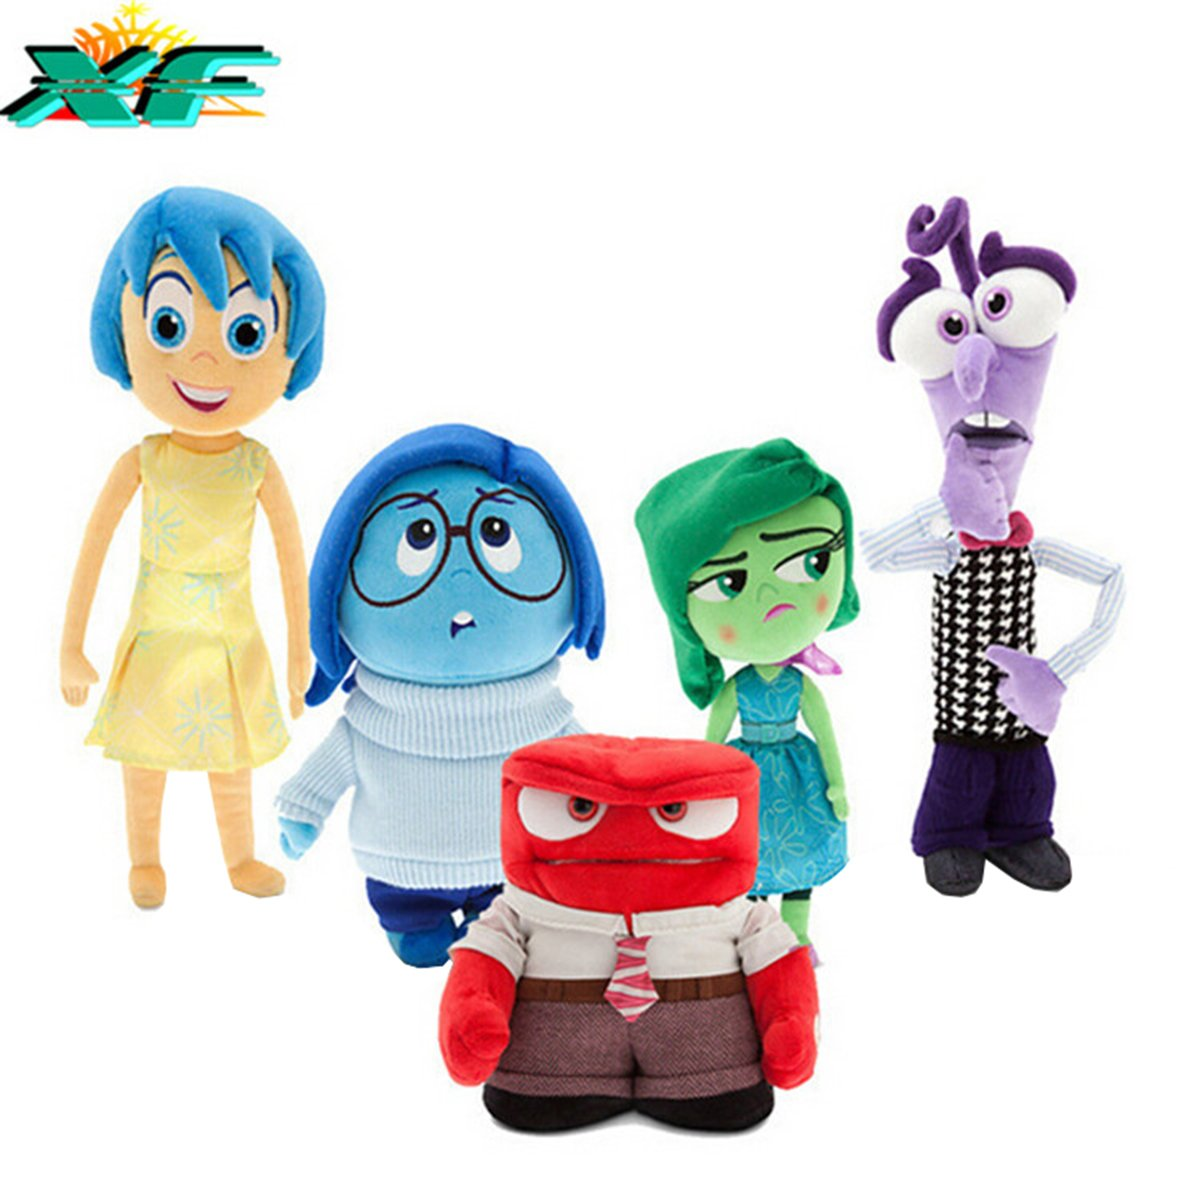 TalentPZ eco-friendly Halloween Christmas Birthday Gift Children Kids 5 Pieces ''Inside Out'' Stuffed Puppet Dolls Plush Toys Set 5 Small (Height:13-20cm / 5.12-7.88''£